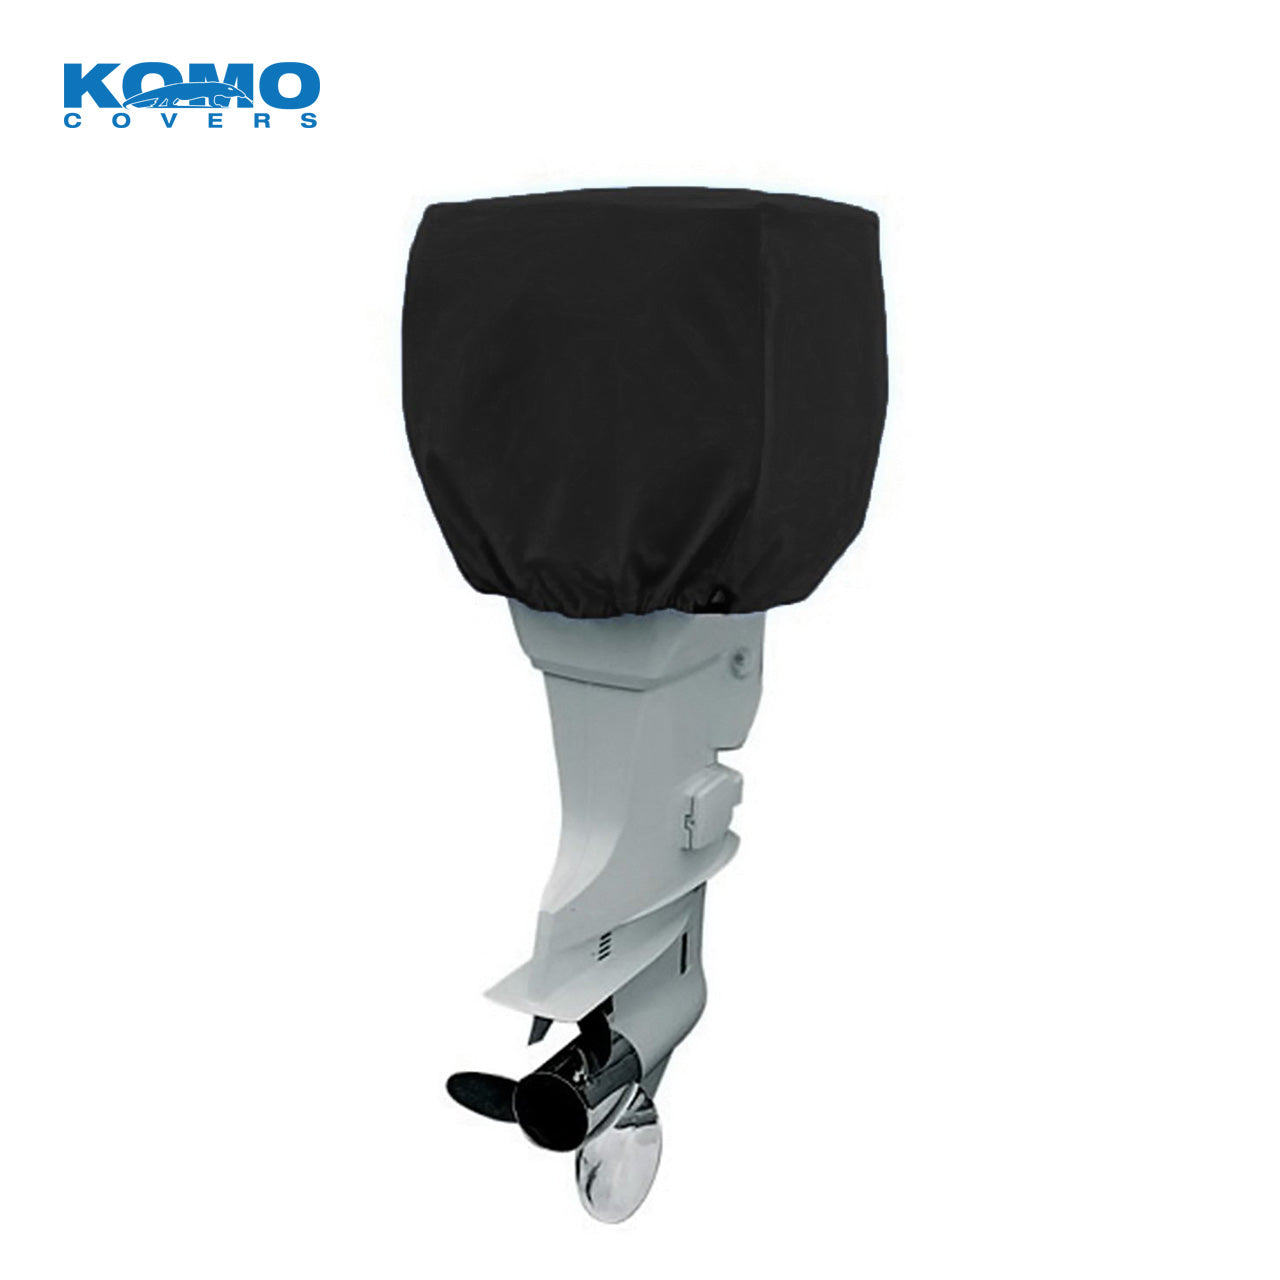 Outboard Motor Cover - Black